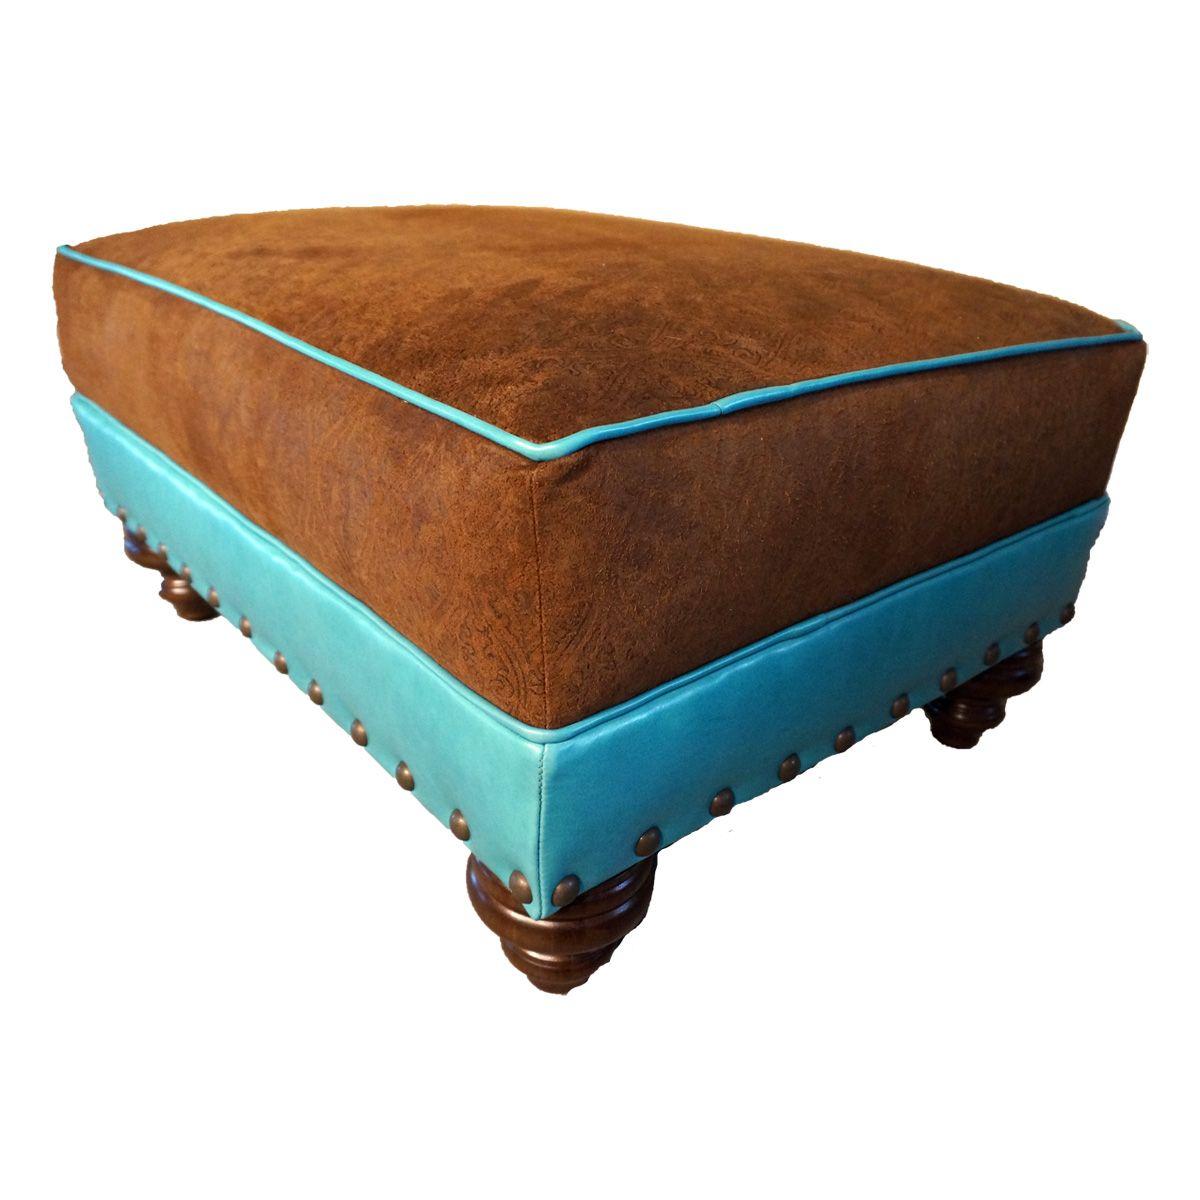 Turquoise & Embossed Leather Medium Ottoman